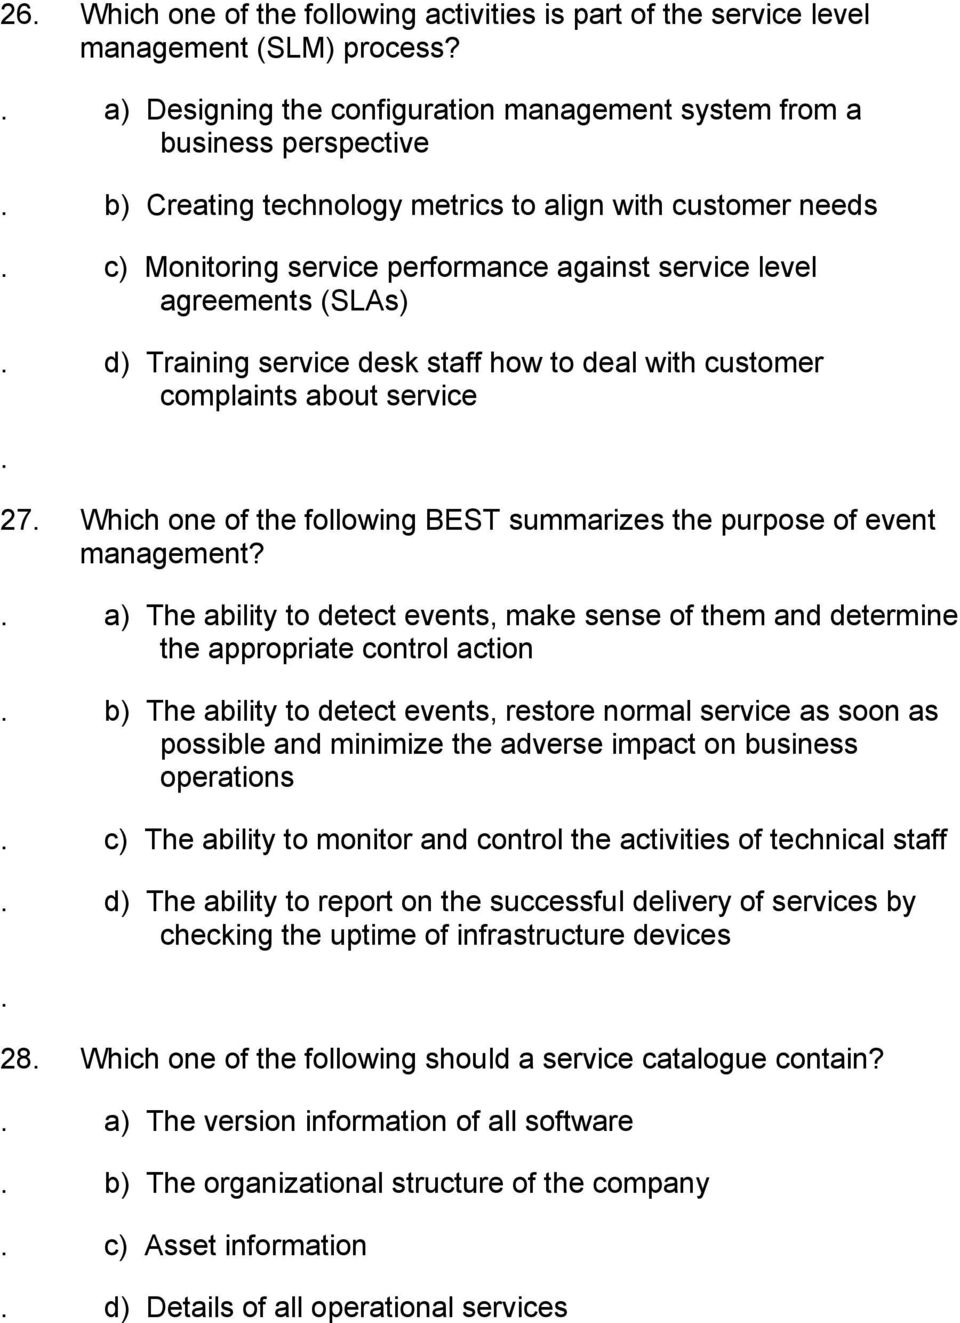 agreements (SLAs) d) Training service desk staff how to deal with customer complaints about service 27 Which one of the following BEST summarizes the purpose of event management?